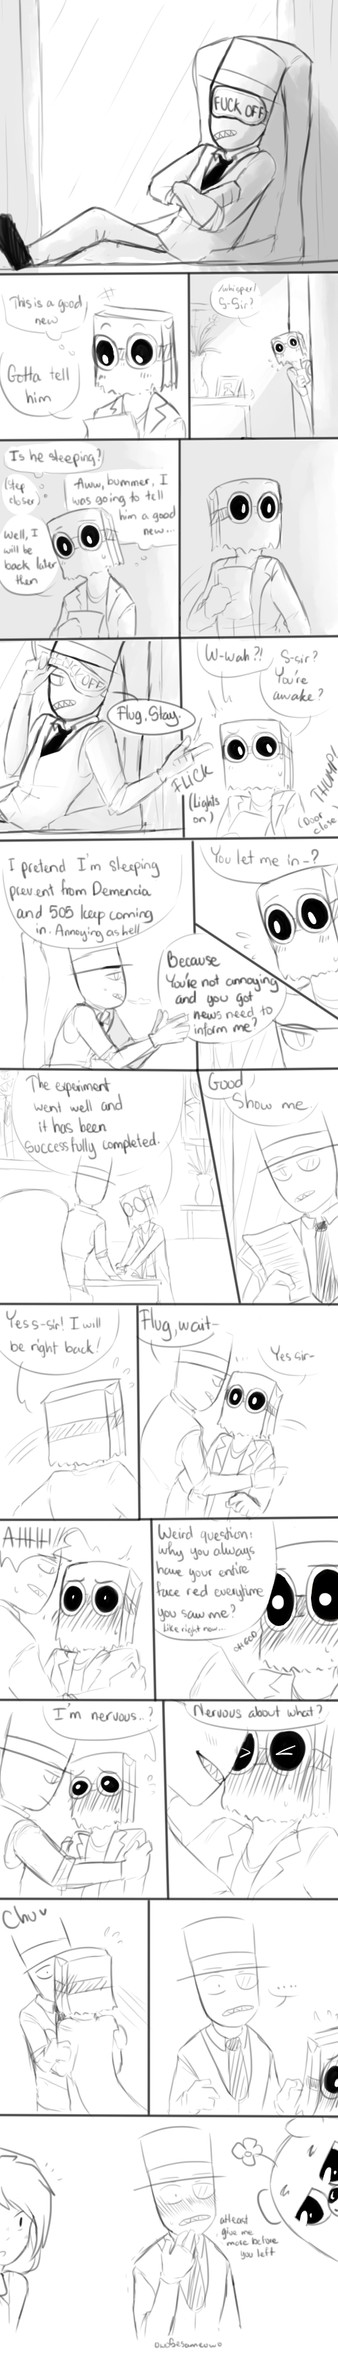 [Villainous] Why not more? by owoSesameowo